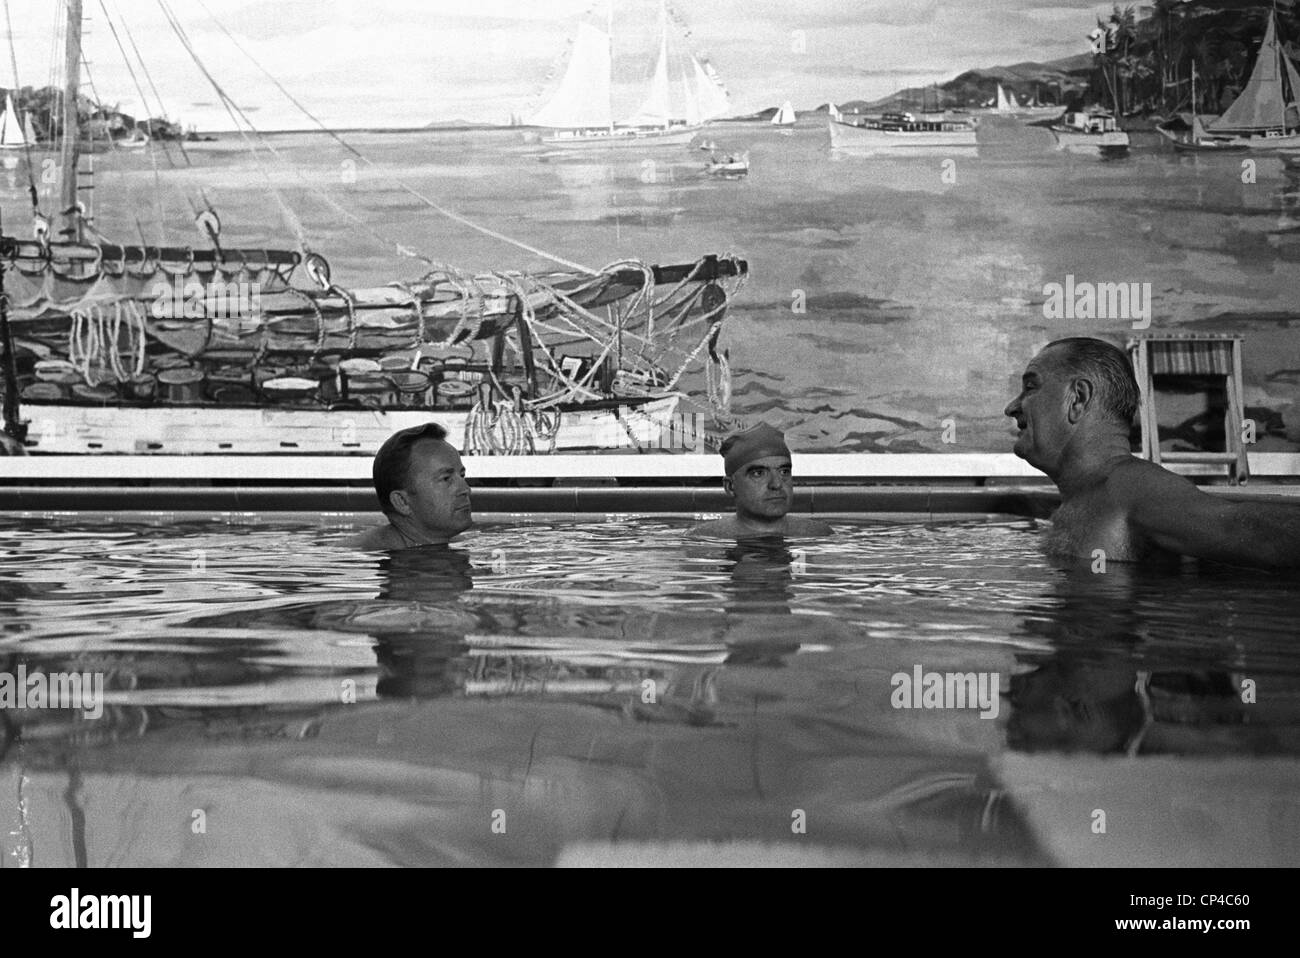 Lbj In The White House Swimming Pool Lloyd Hand Jack Valenti Stock Photo Royalty Free Image